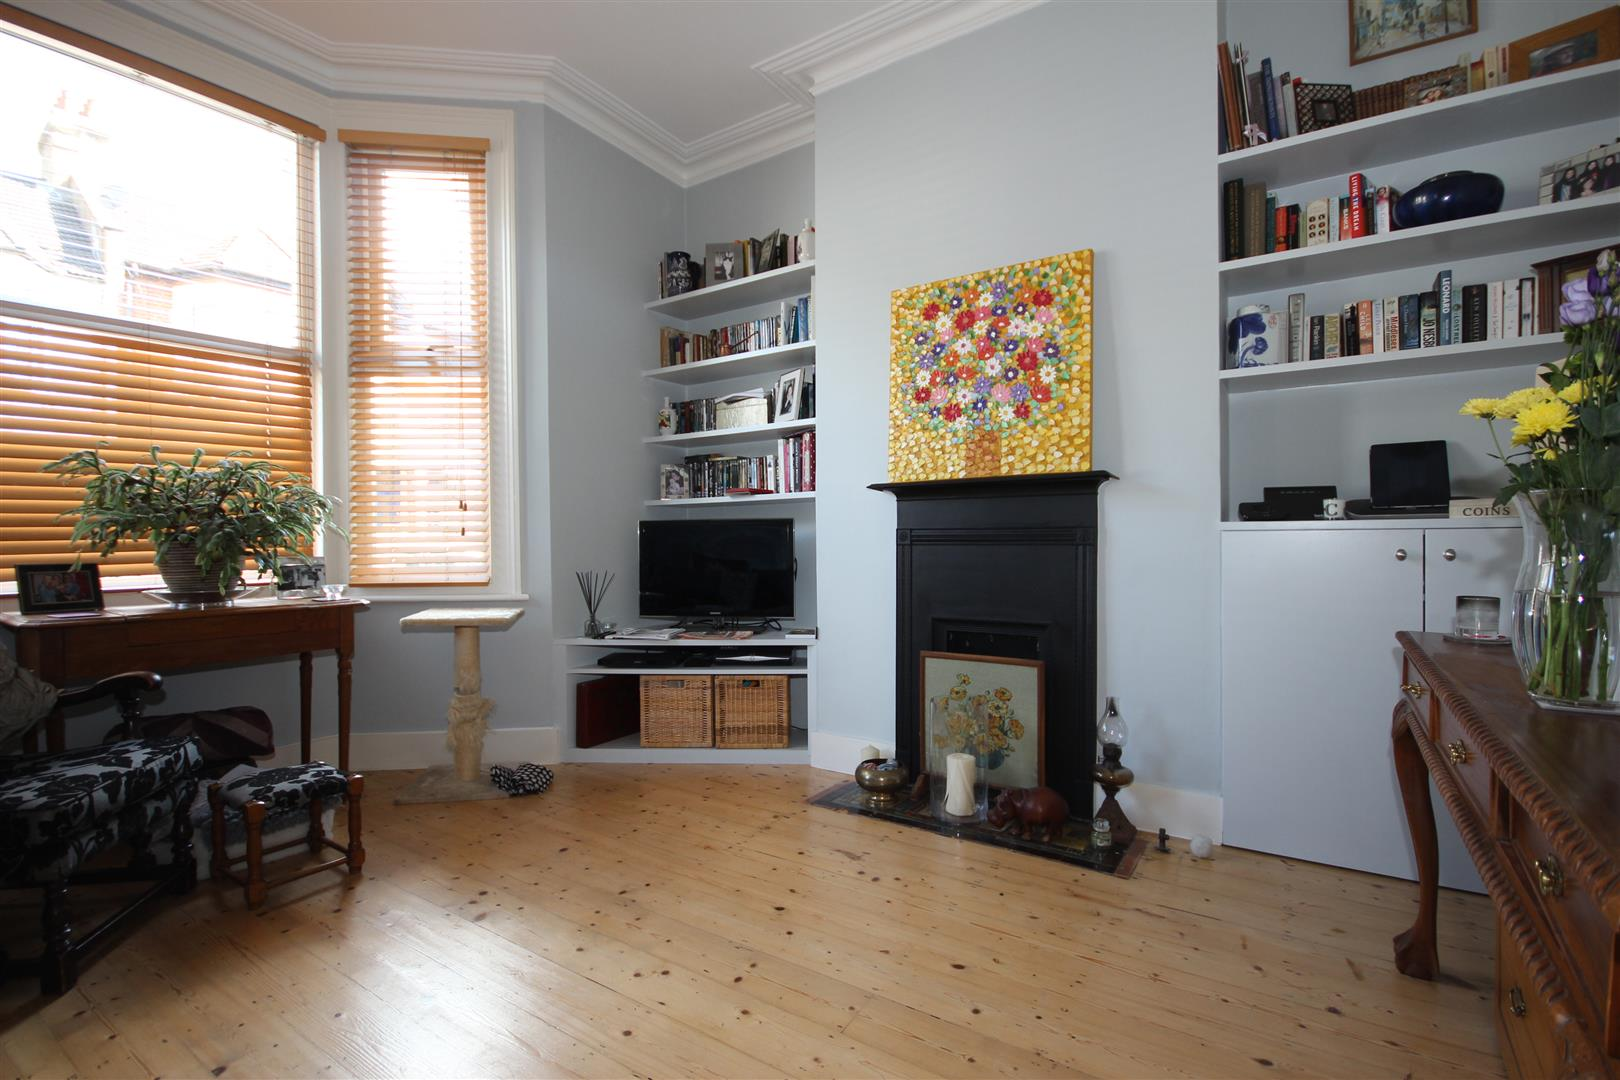 2 Bedrooms House for sale in St. Thomas's Road, London